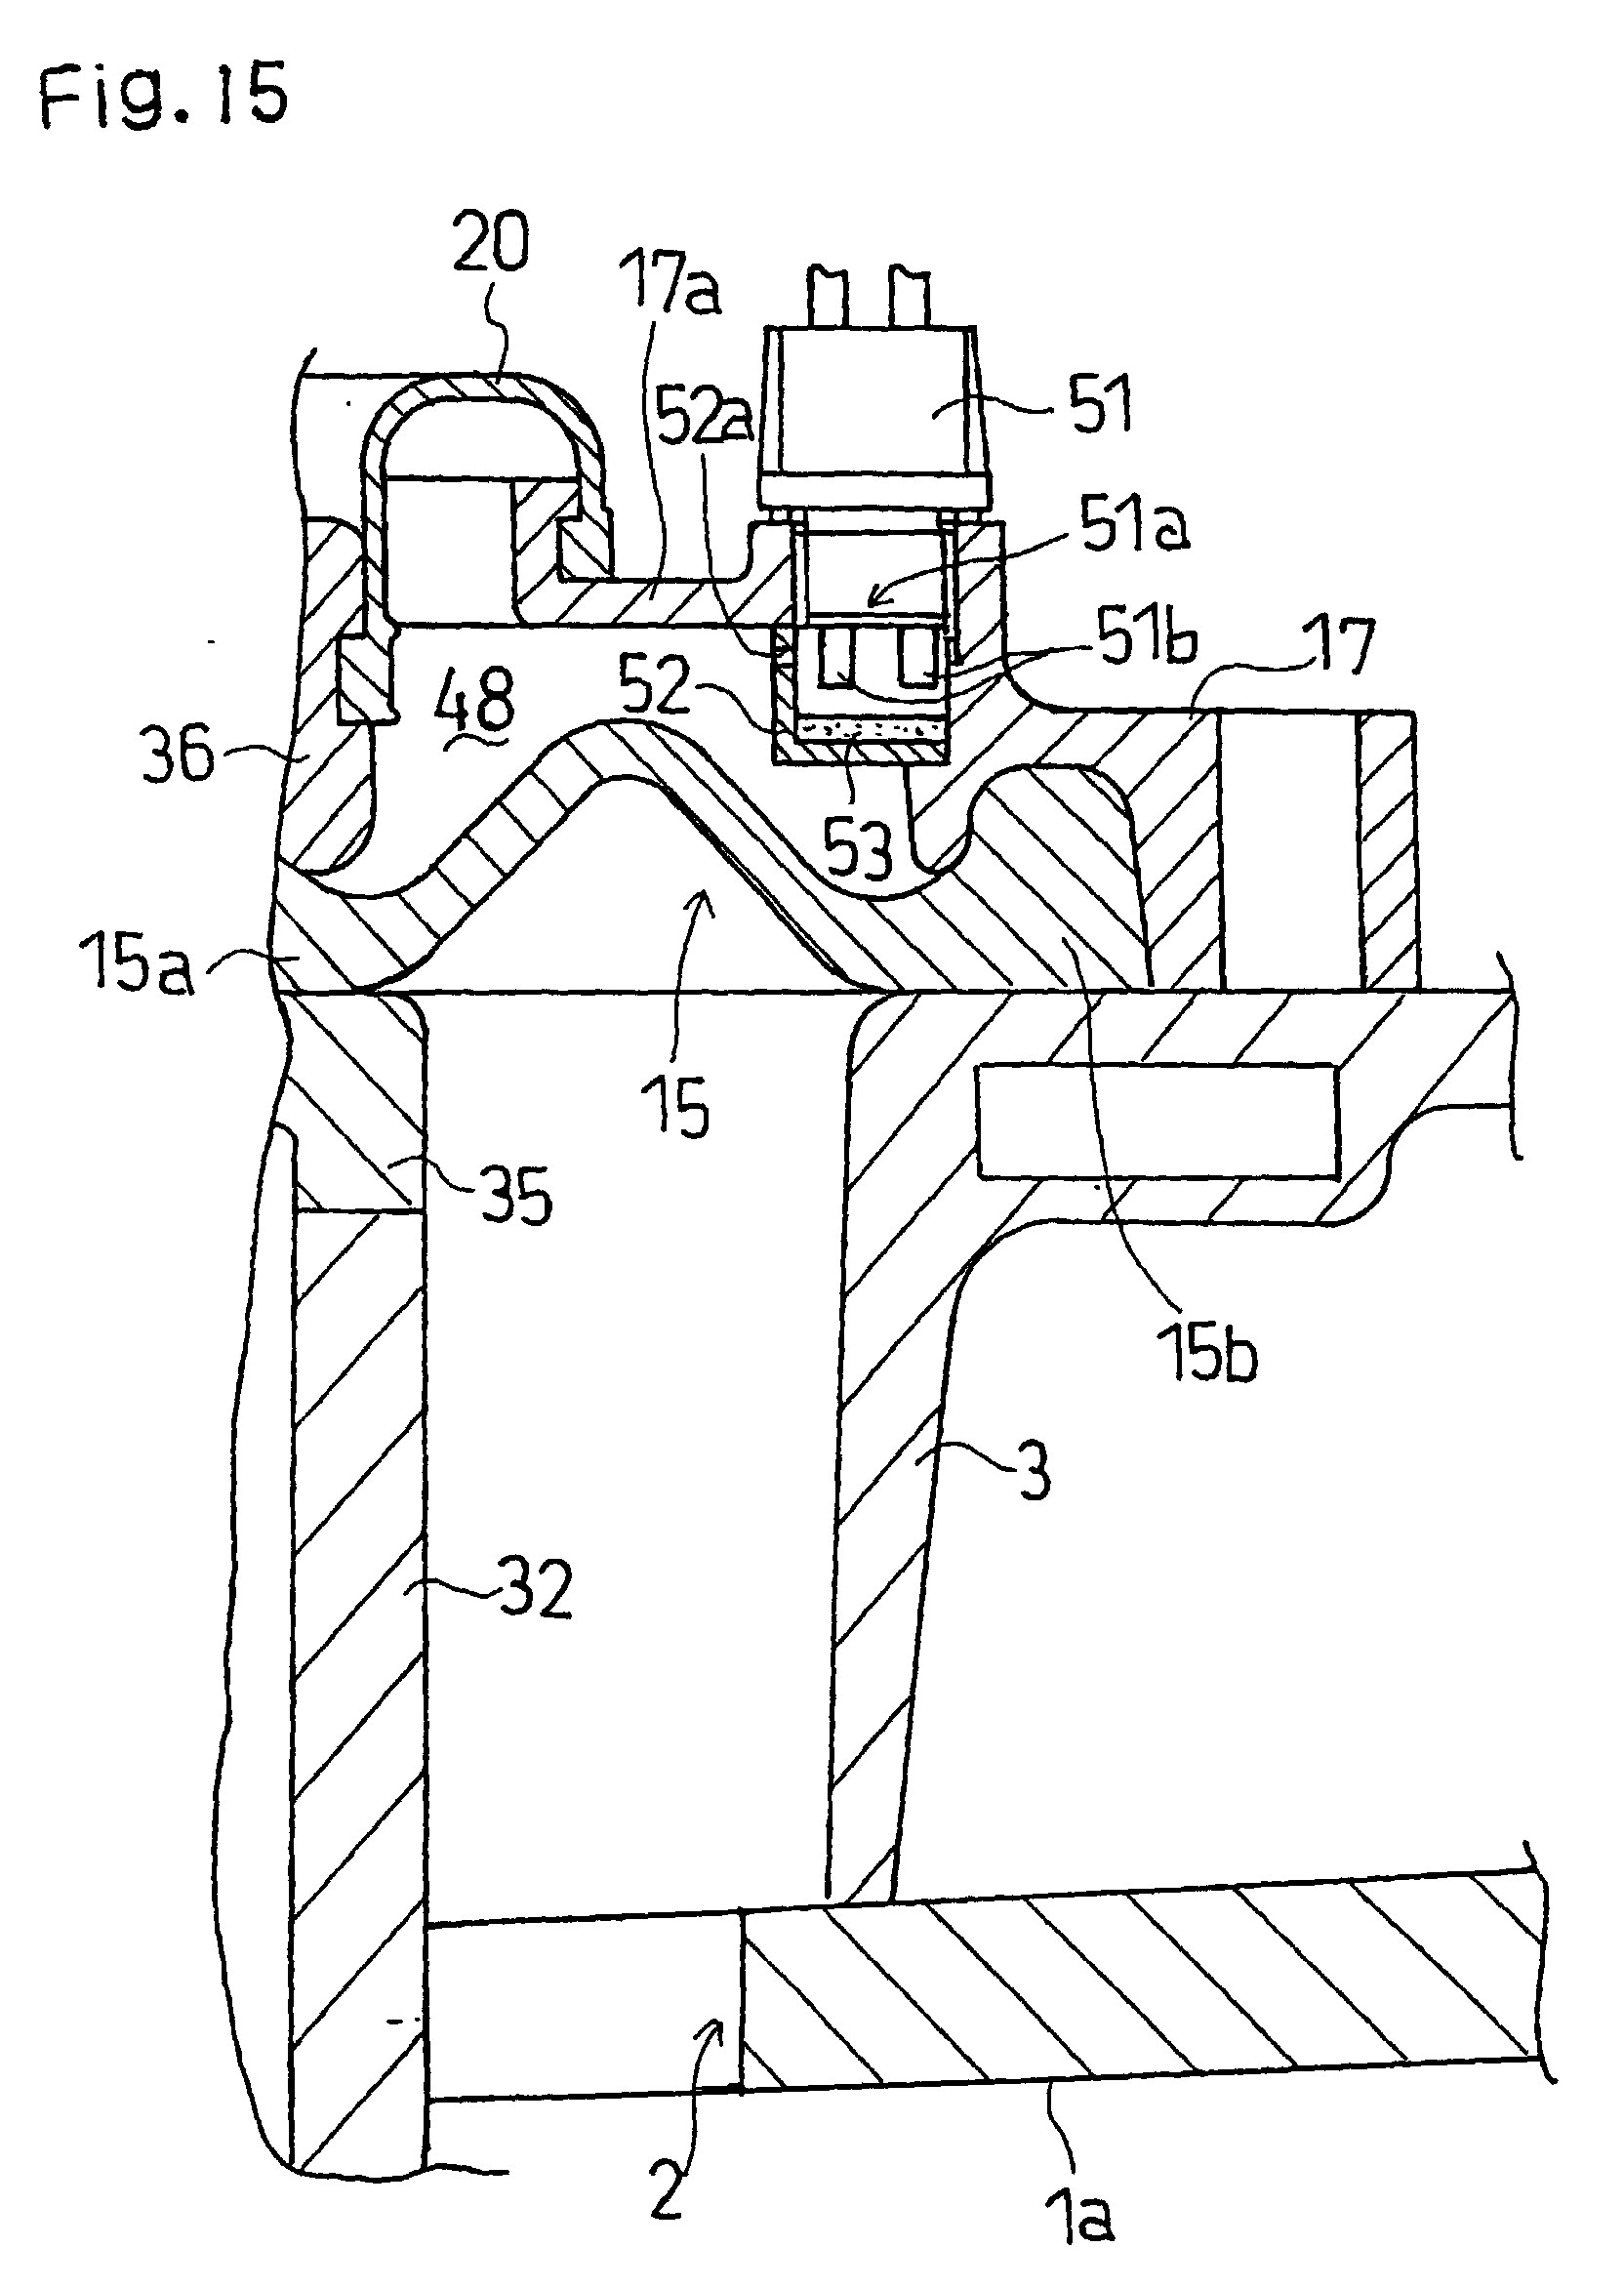 Inboard Outboard Engine Diagram Patent Ep A1 Drive Device Of Inboard and Outboard Engines Of Inboard Outboard Engine Diagram